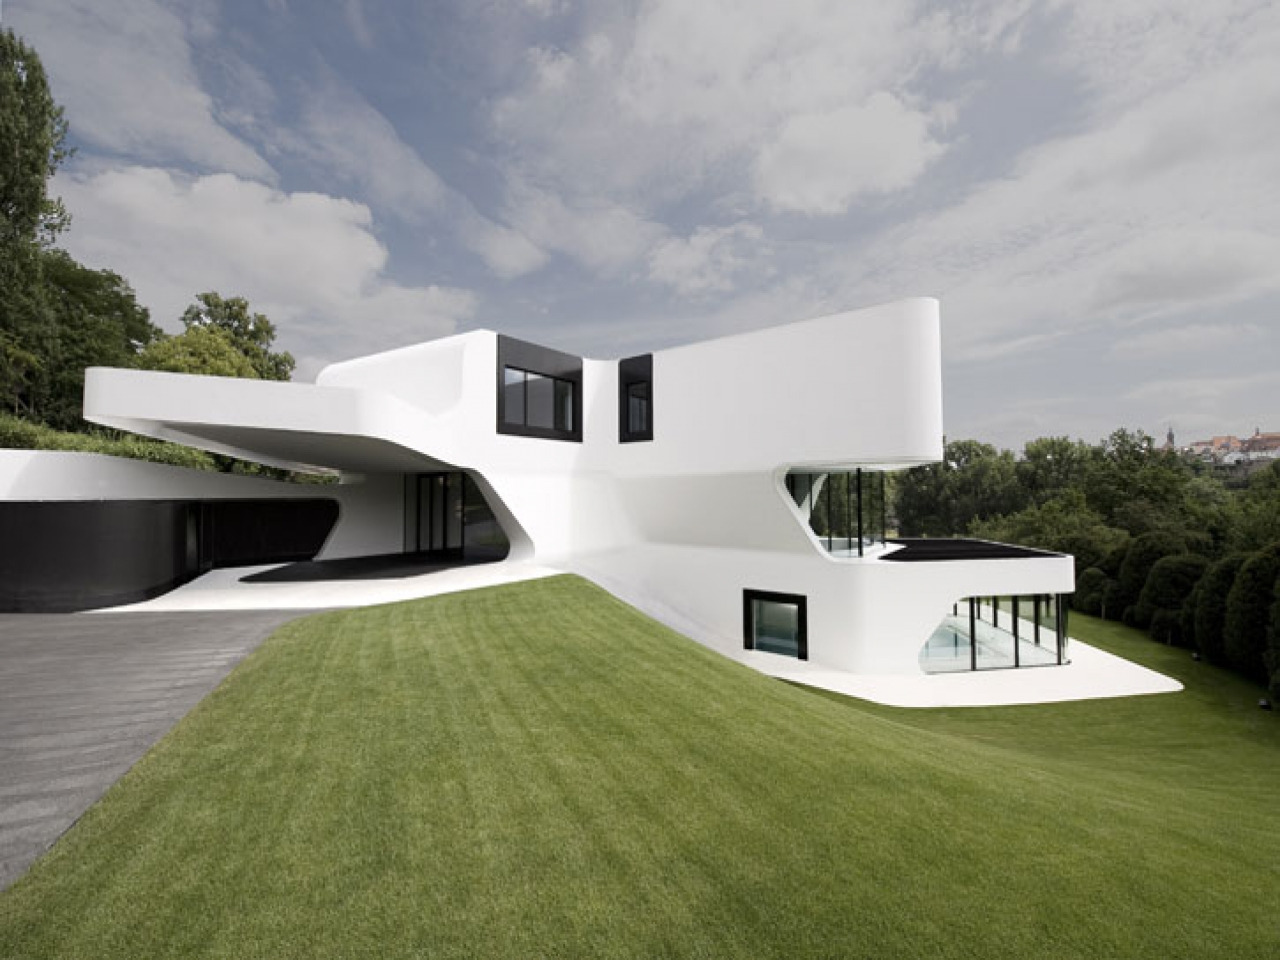 white best small house designs in the world houses home elements and style